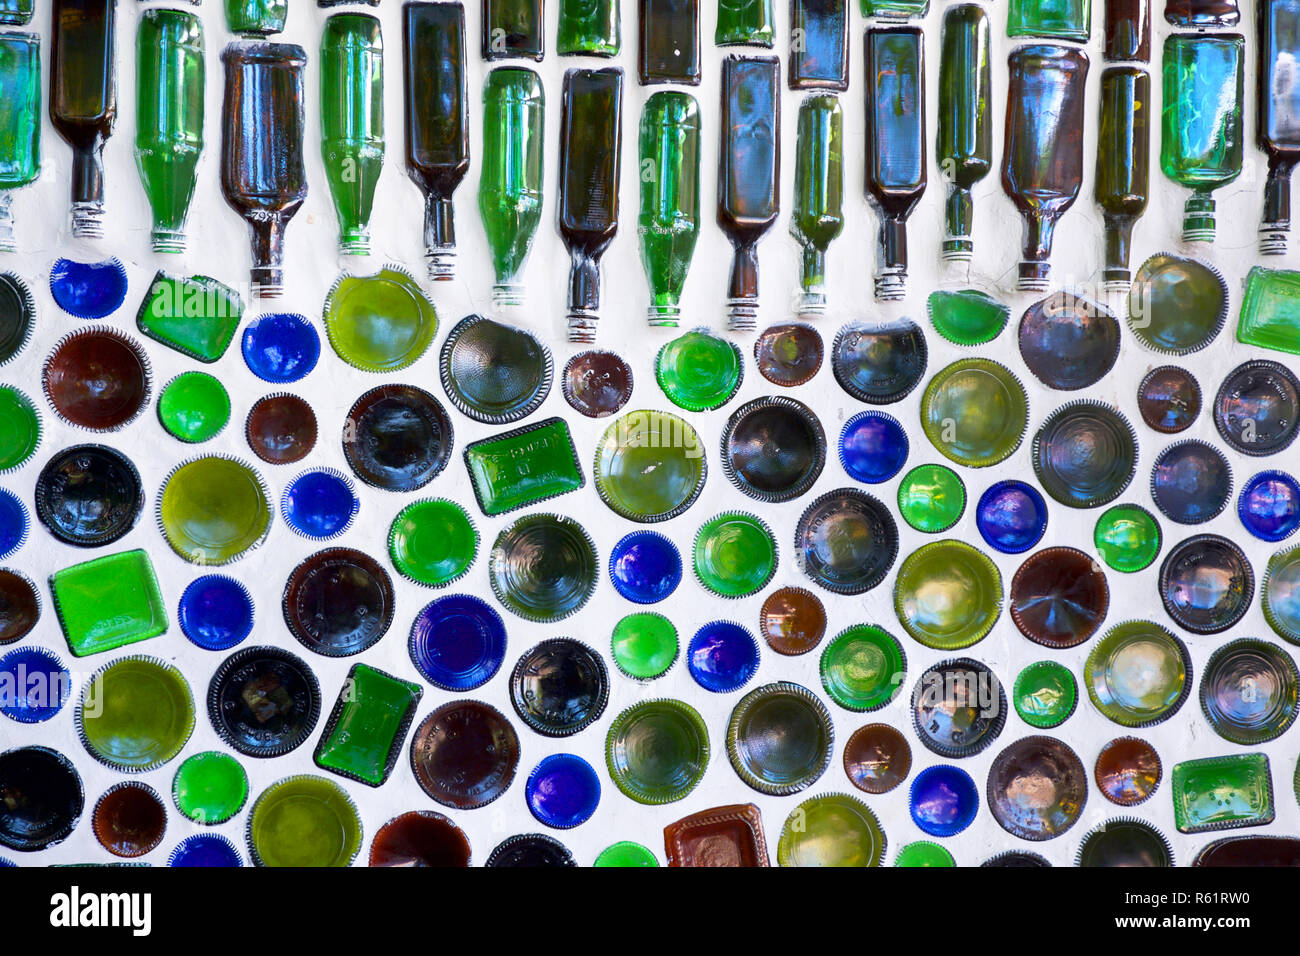 one hundred glass bottles built into a white wall, fifty of the bottles in the bottom of the image have just the bottom of the circular glass showing, - Stock Image